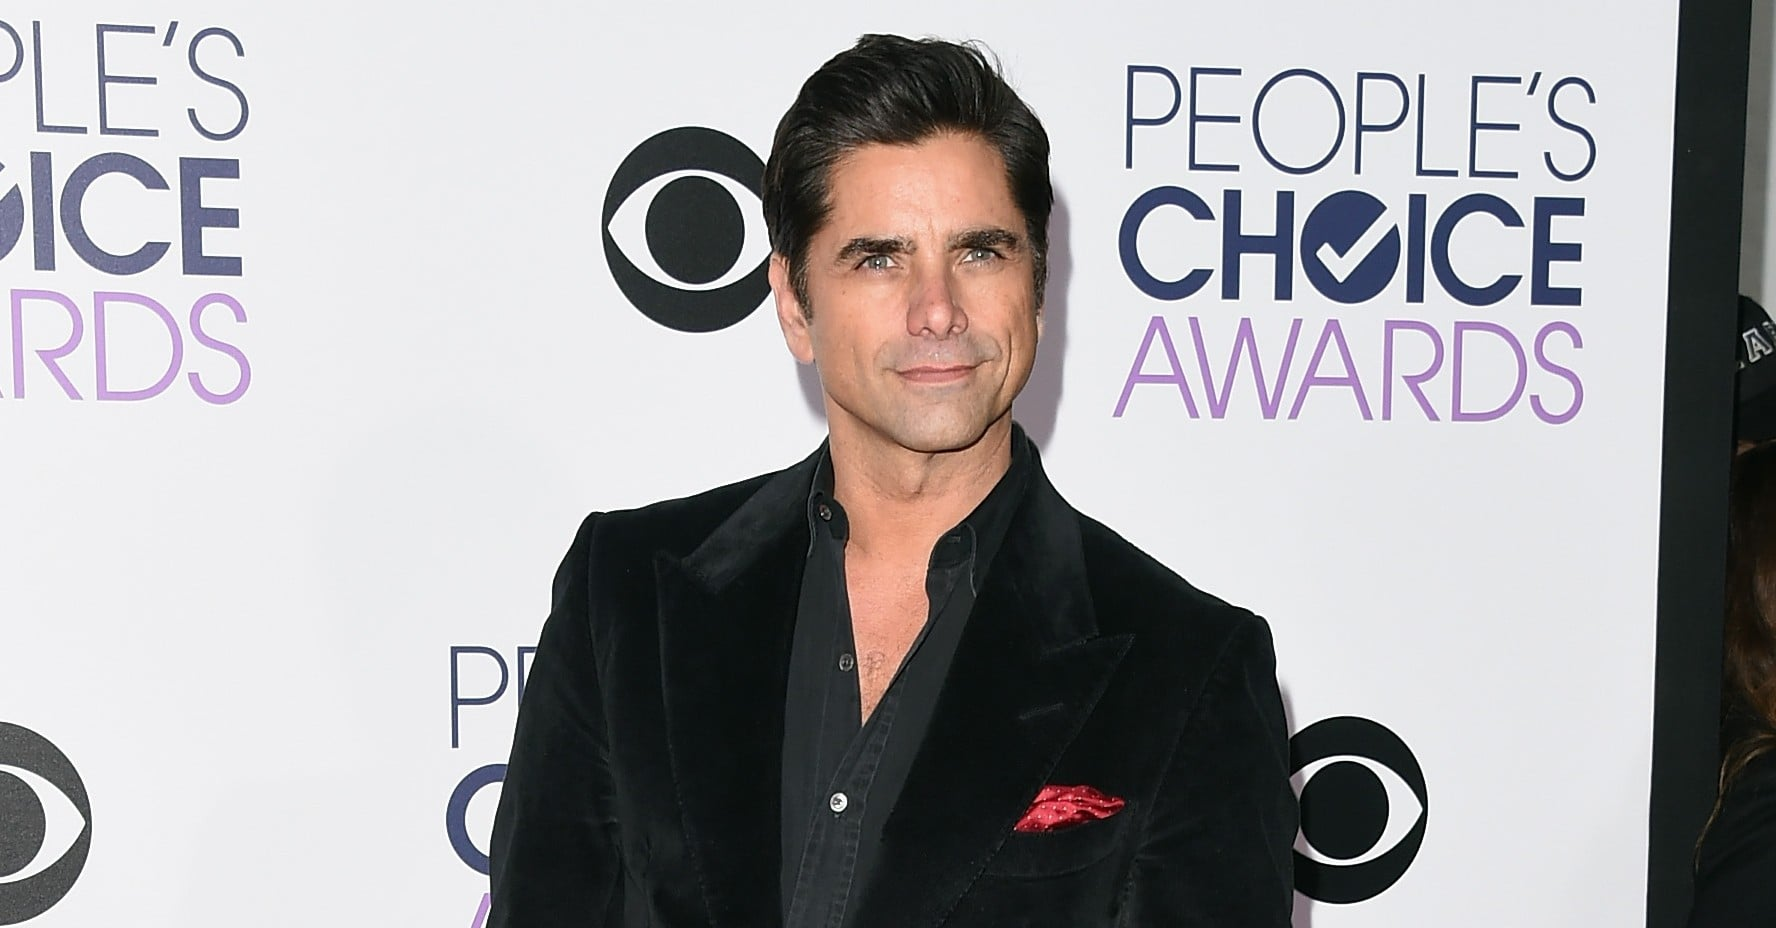 John Stamos Says He and His Wife, Caitlin McHugh, Really Want to Have Another Baby